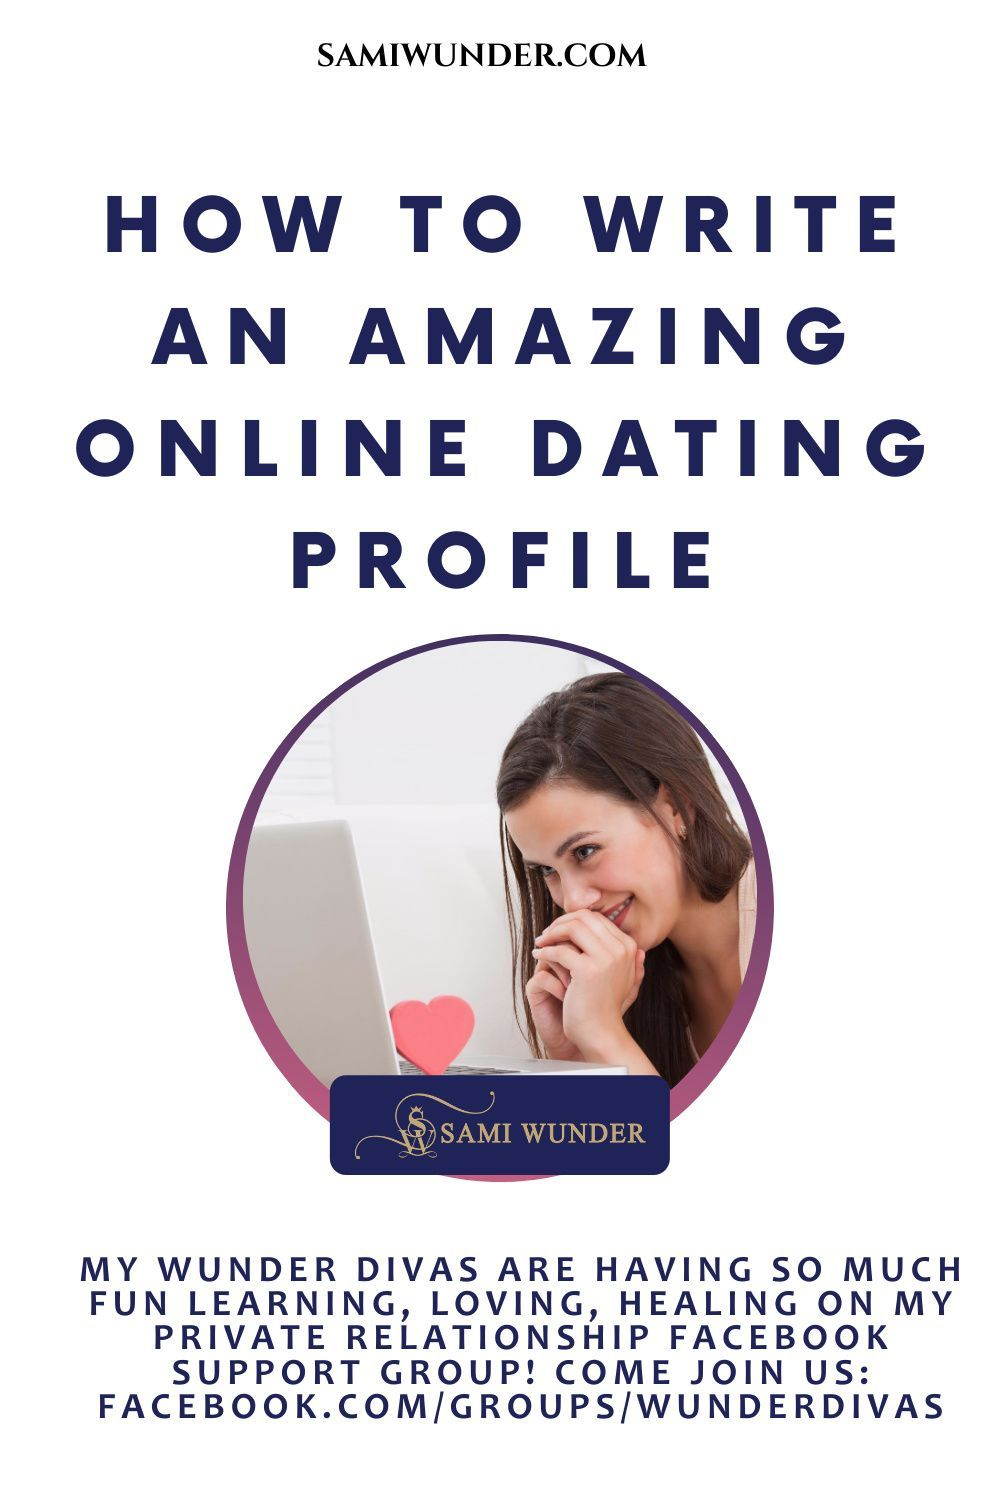 How To Write An Amazing Online Profile Online Profile Inspirational Speaker Online Dating Profile